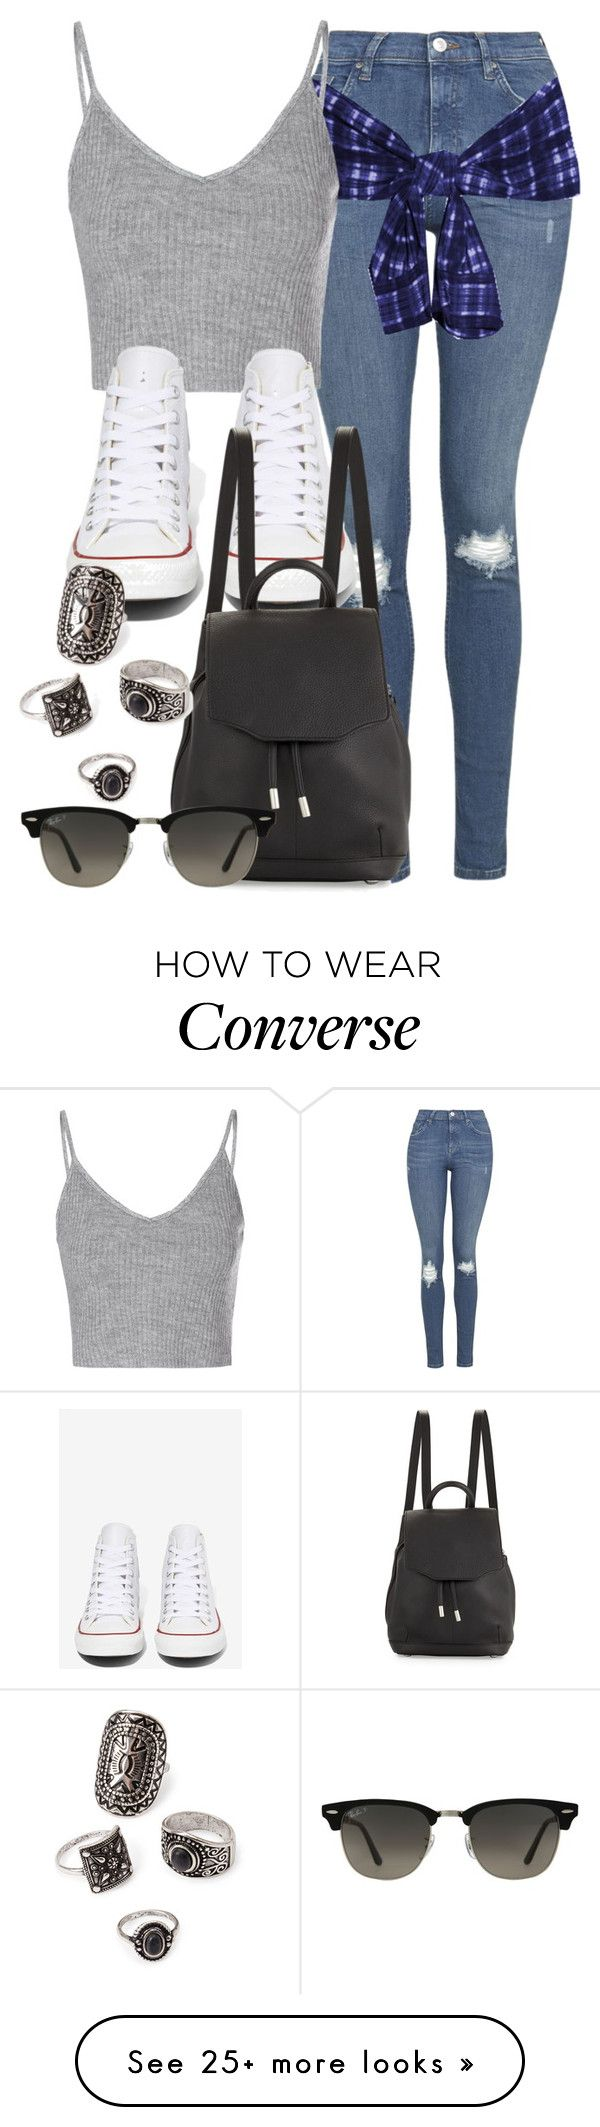 """Style #9990"" by vany-alvarado on Polyvore featuring Topshop, Glamorous, Converse, rag & bone, Ray-Ban and Forever 21"